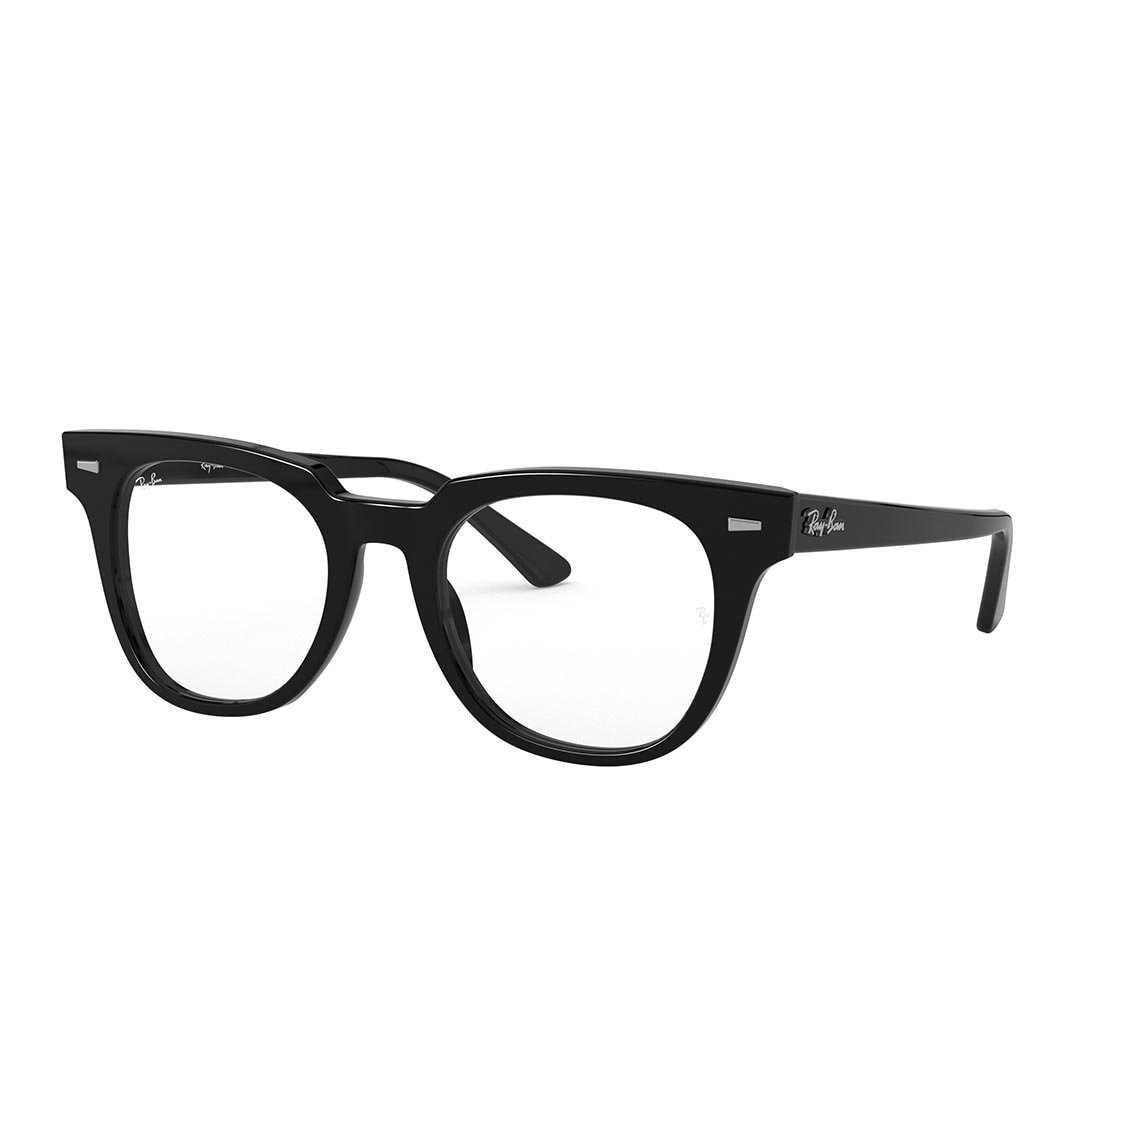 Ray-Ban Meteor Optics RX5377 2000 5220